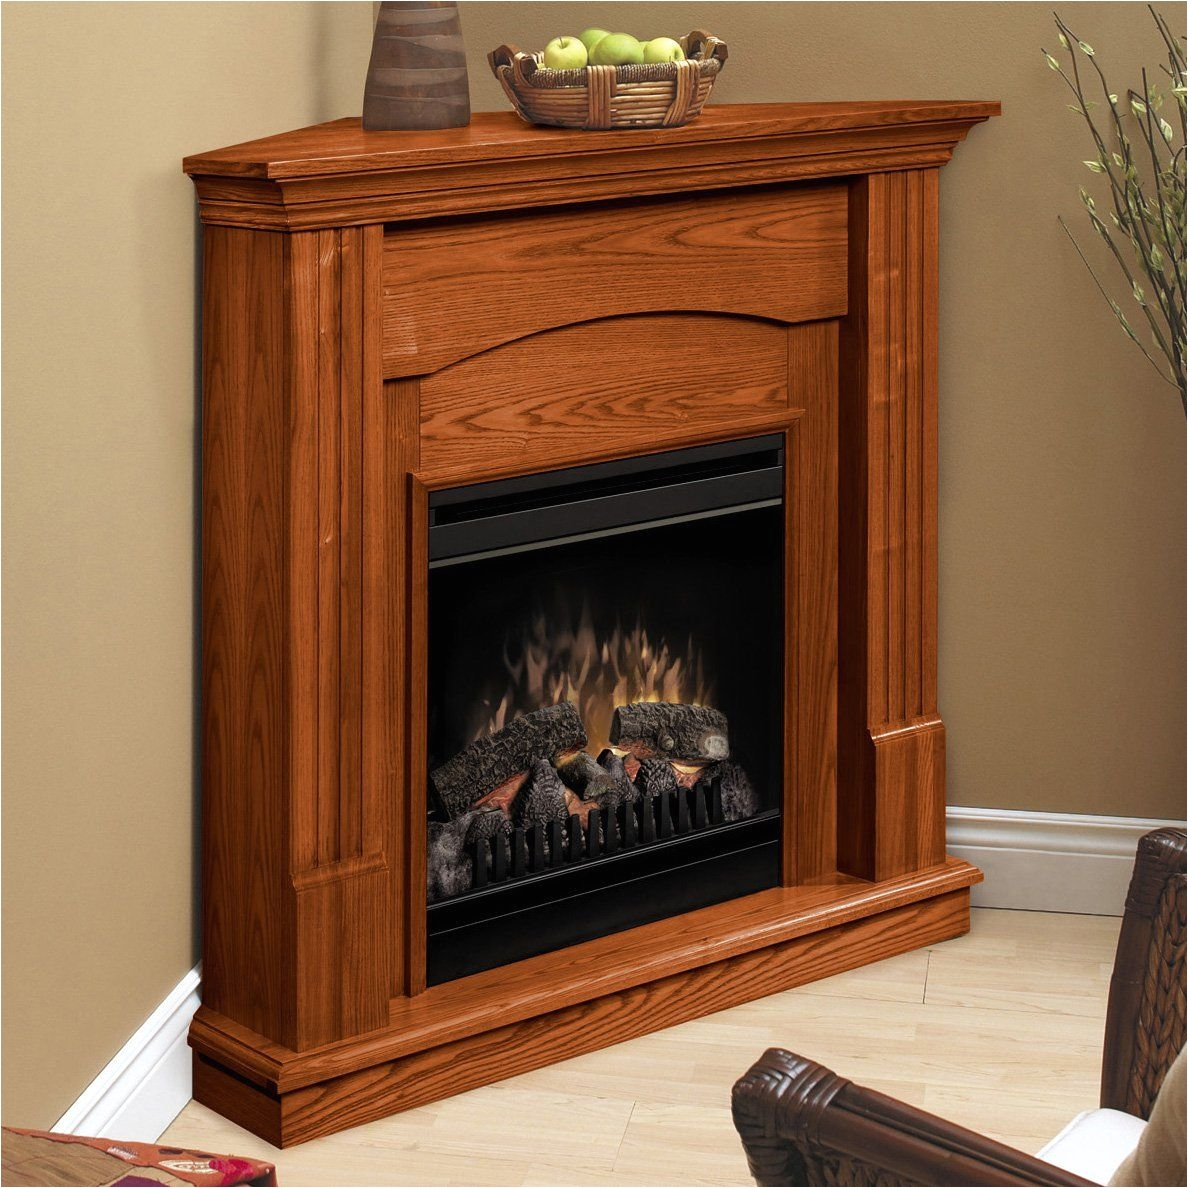 Big Lots Fireplace Stand 19 Best Corner Fireplace Ideas for Your Home Pinterest Corner